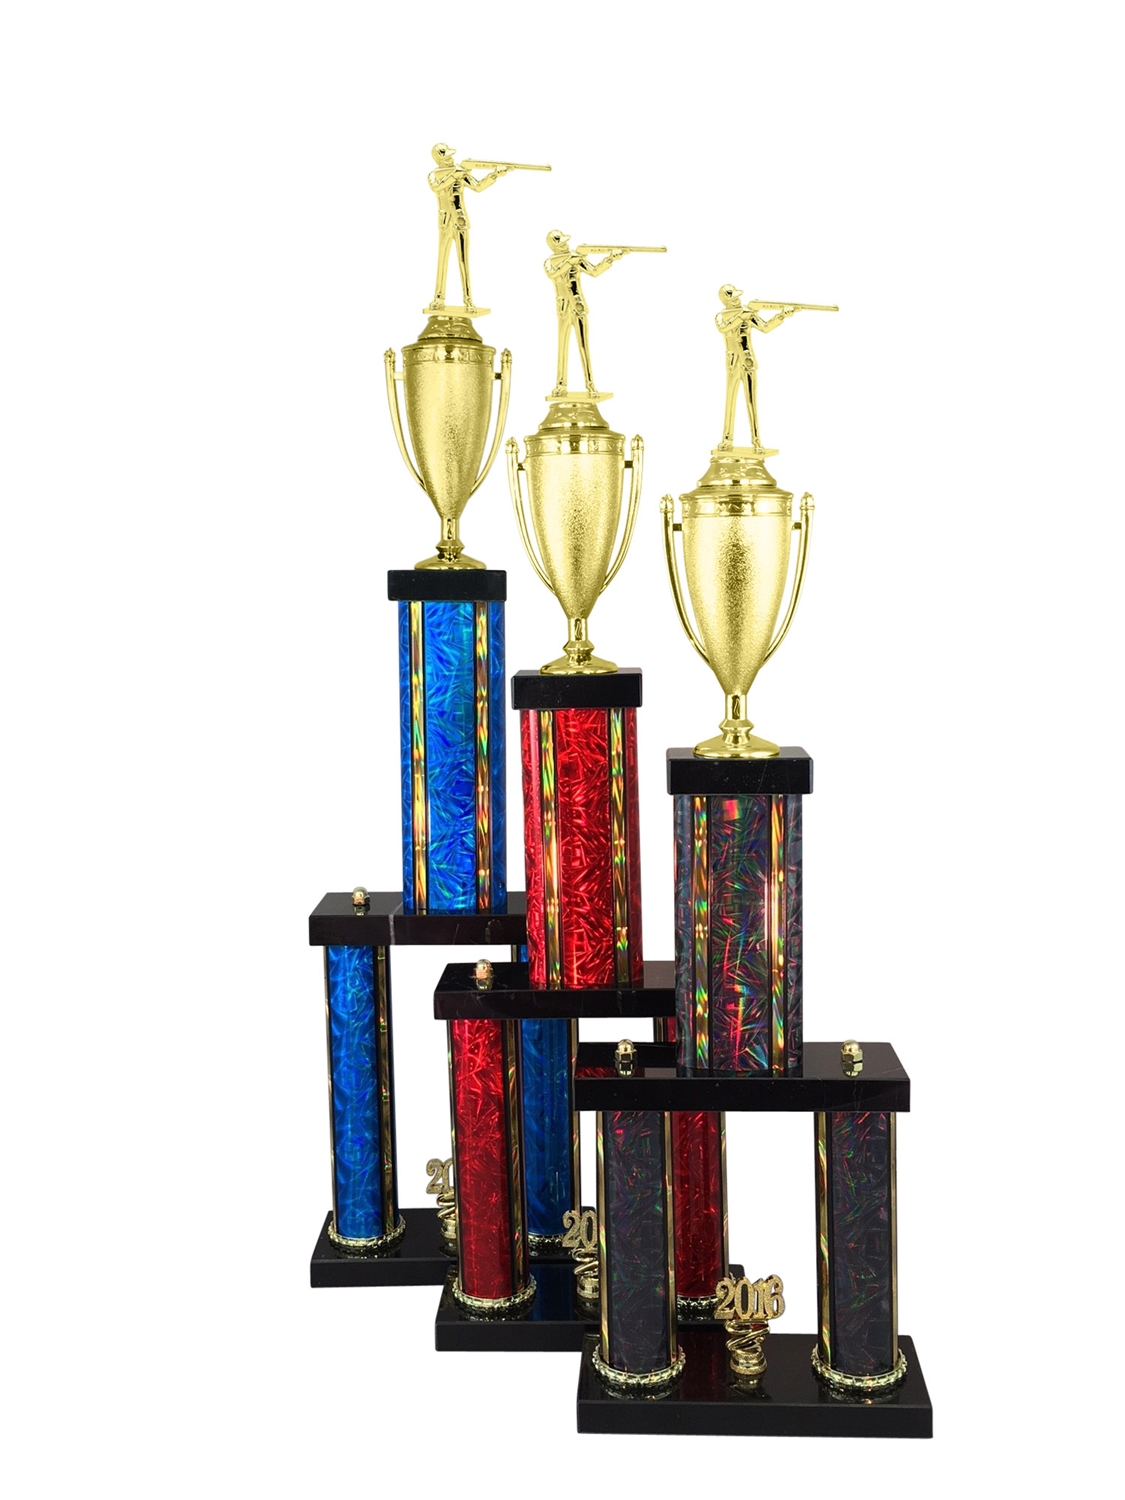 Trap Skeet Shooting Trophy Available in 11 Color & 6 Size Options